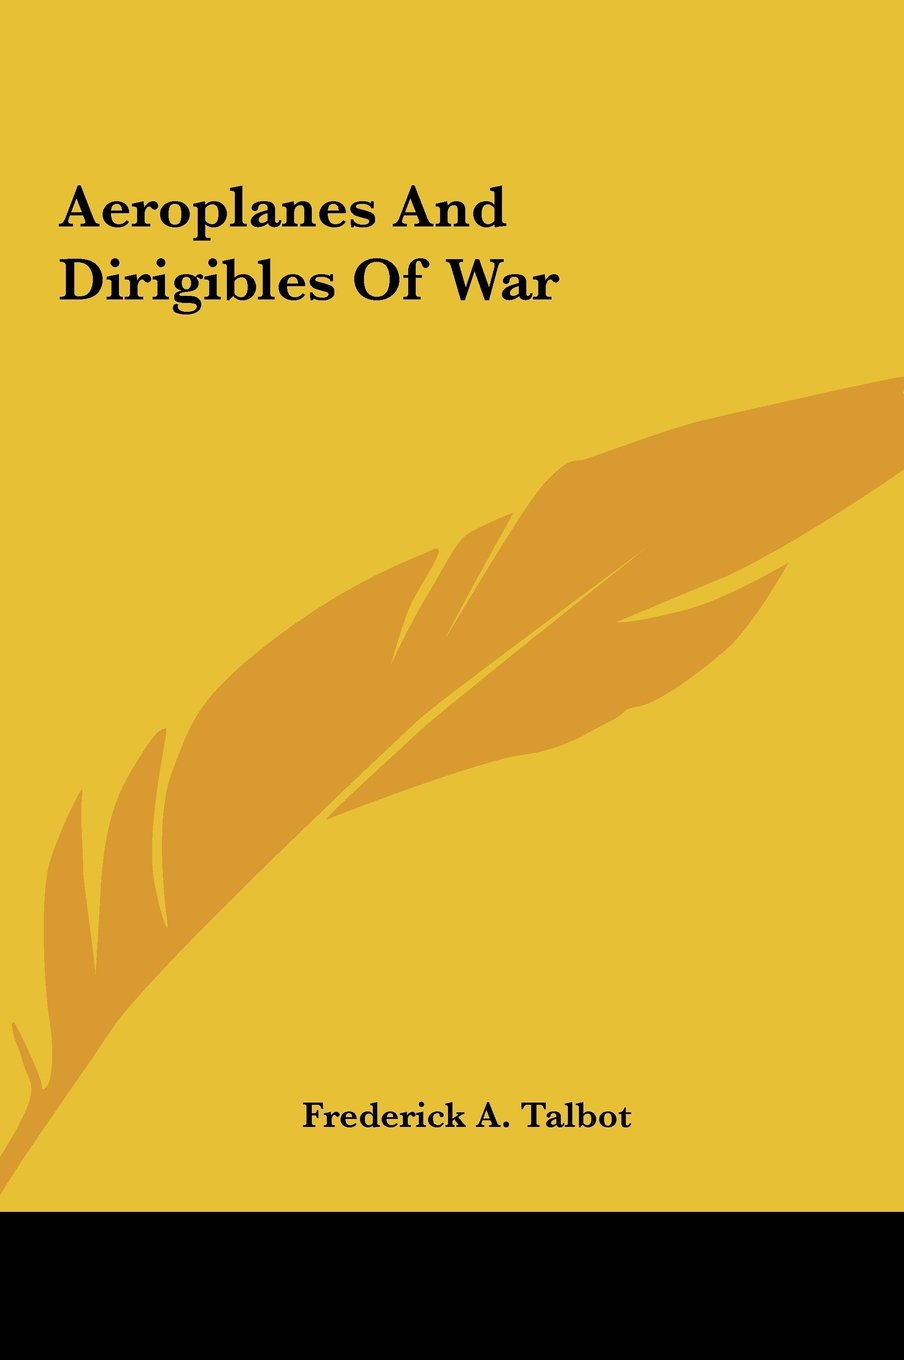 Download Aeroplanes And Dirigibles Of War ebook